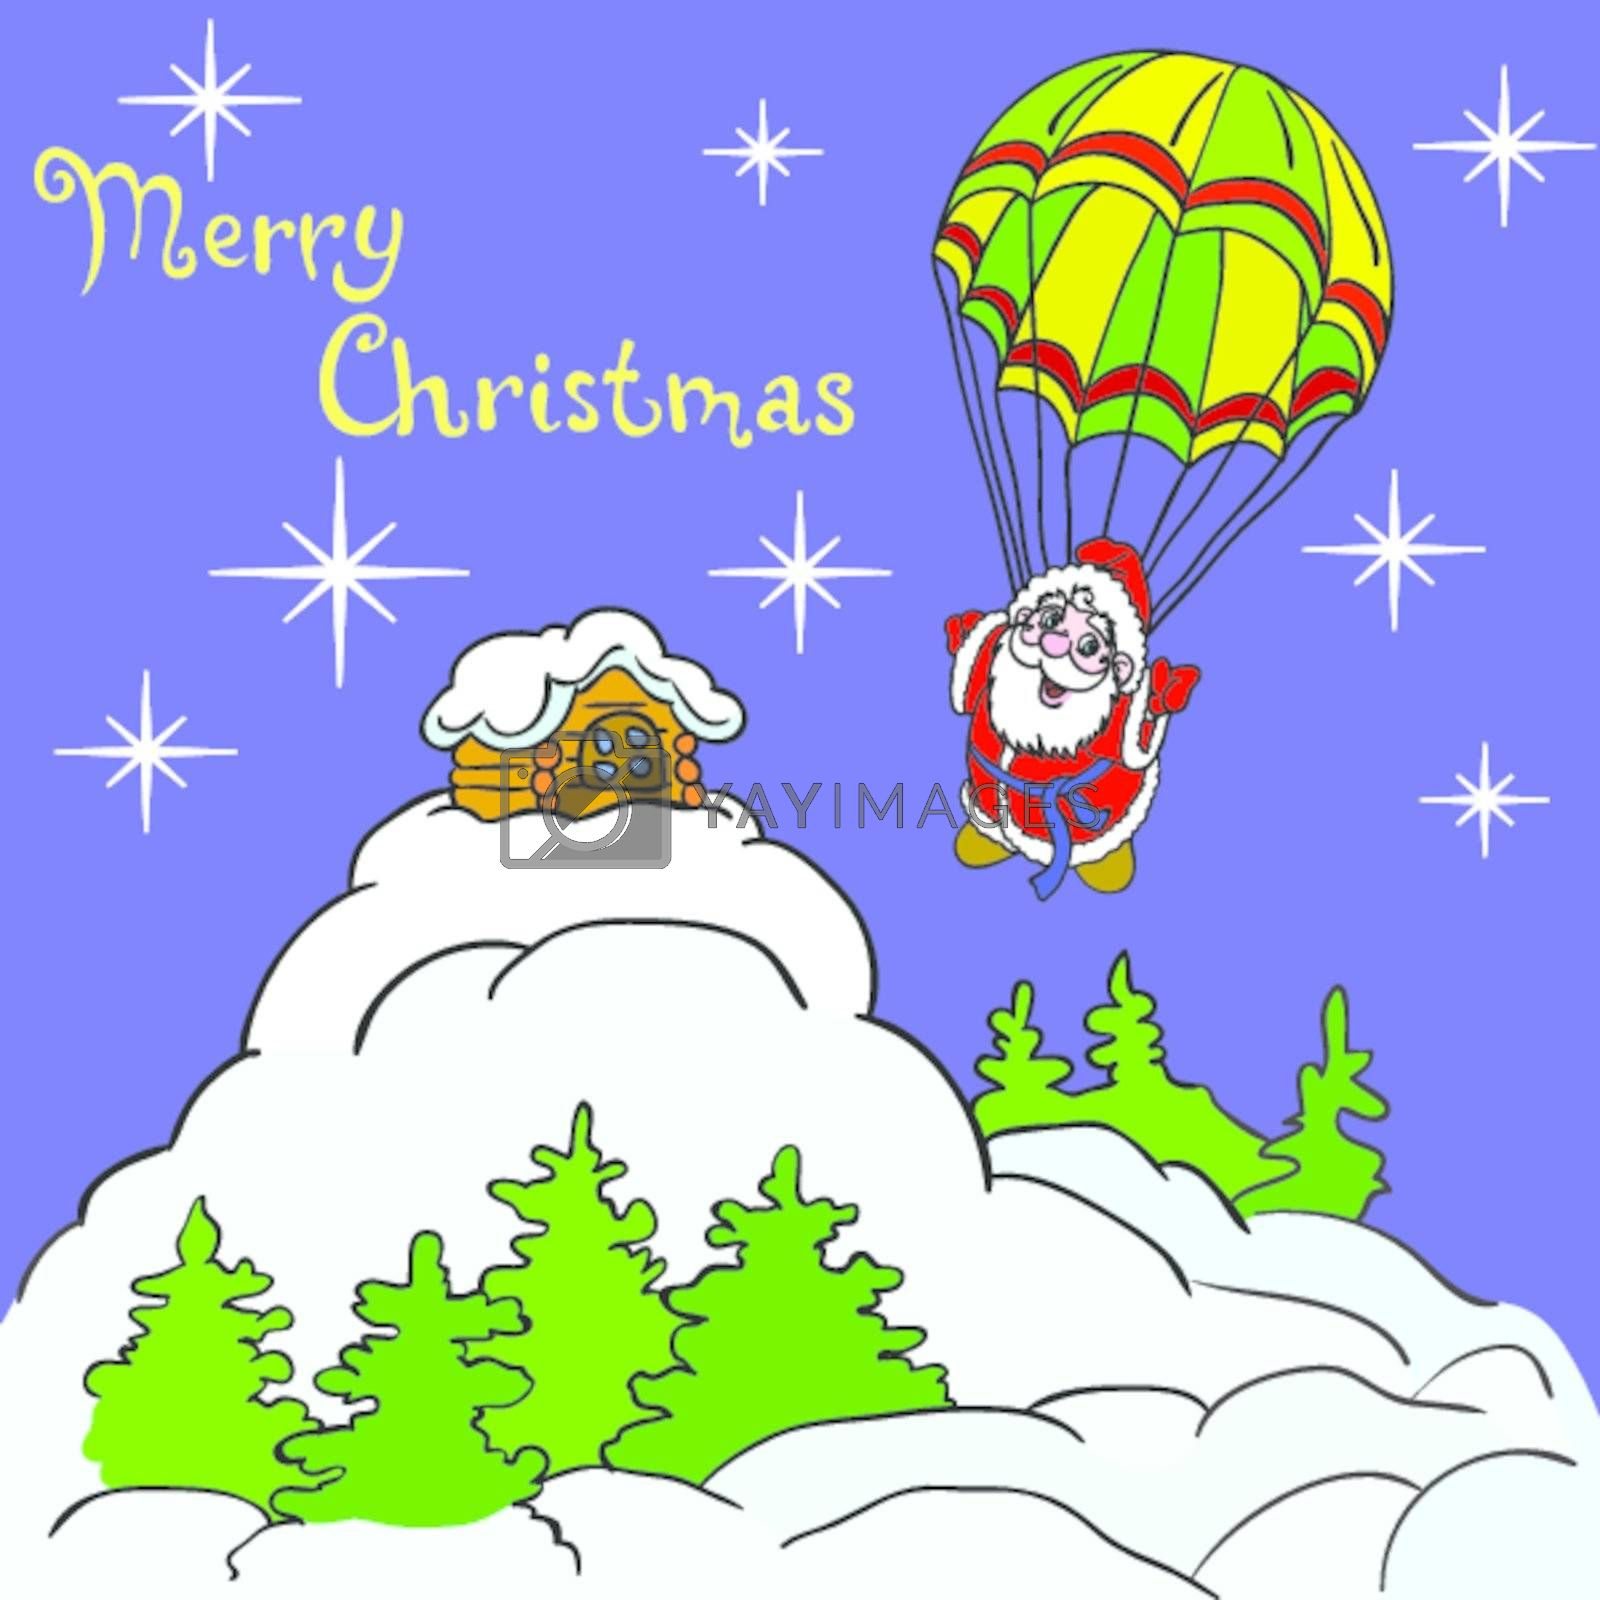 Cheerful Santa Claus goes down from the sky on a parachute. Christmas illustration.